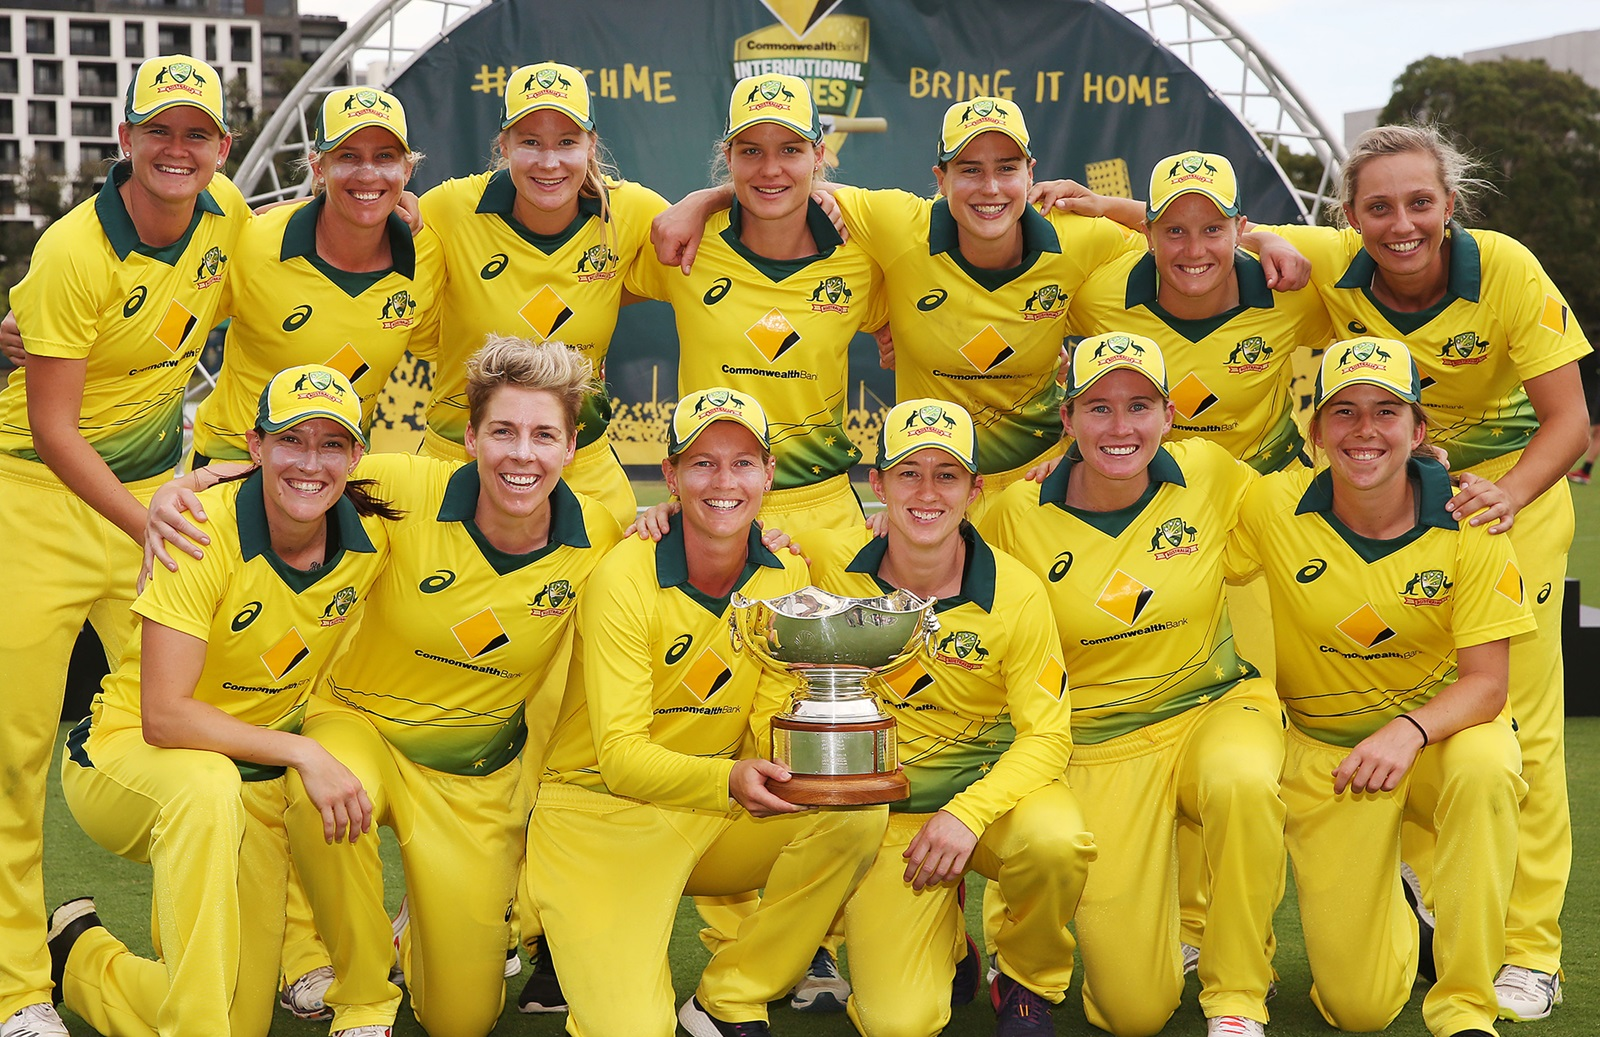 Dominant Aussies Cruise To Clean Sweep Cricket Com Au